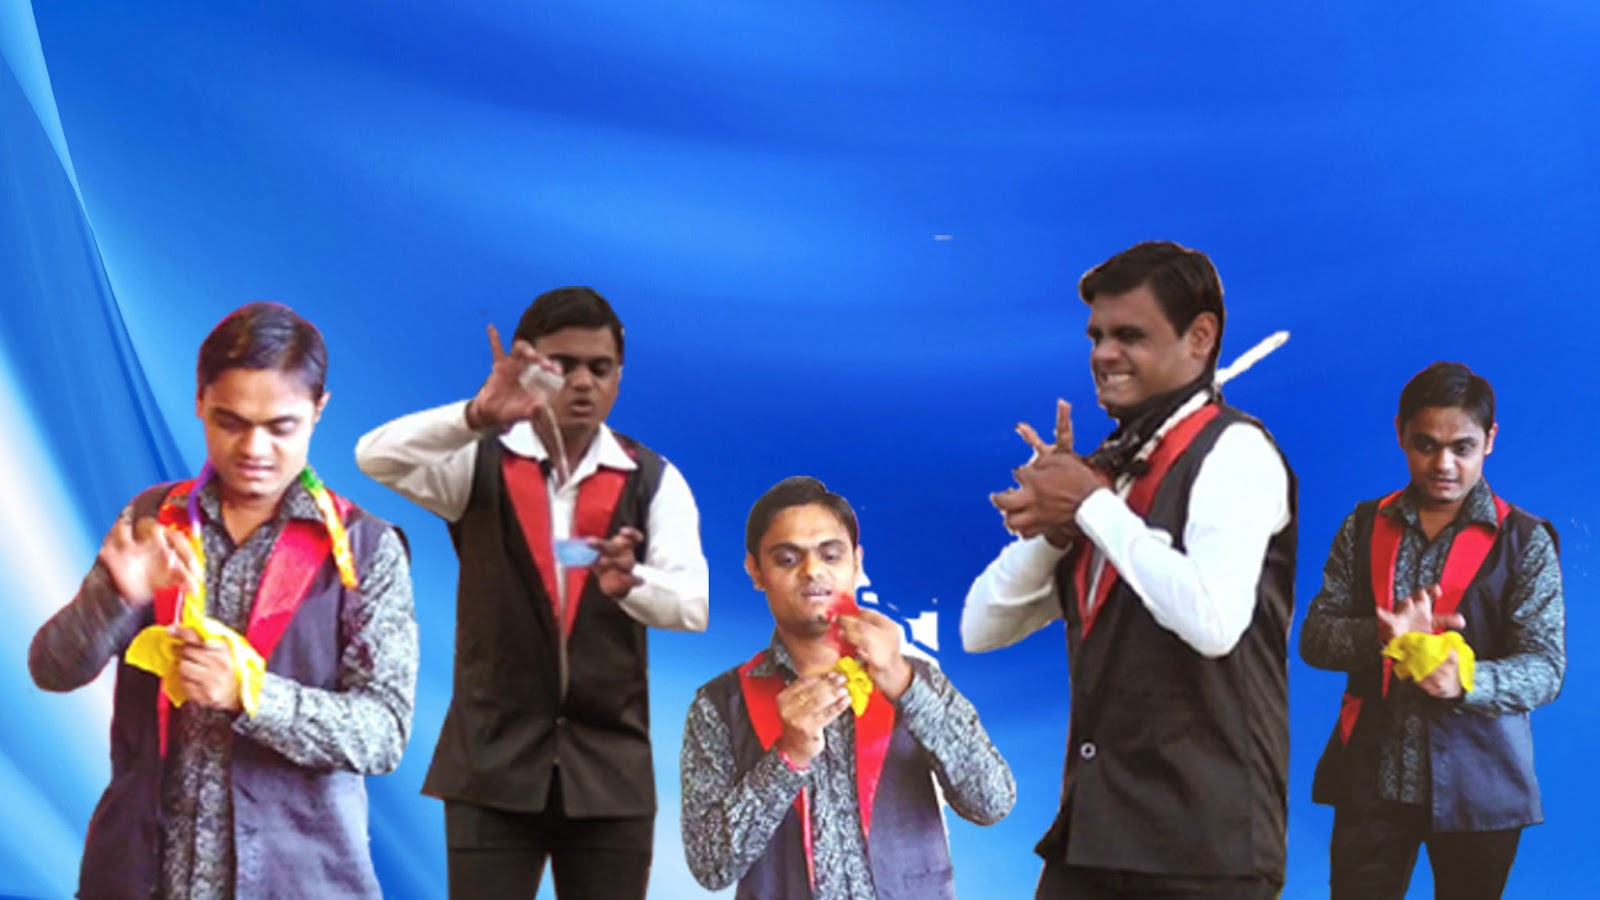 Best Magician in India in world